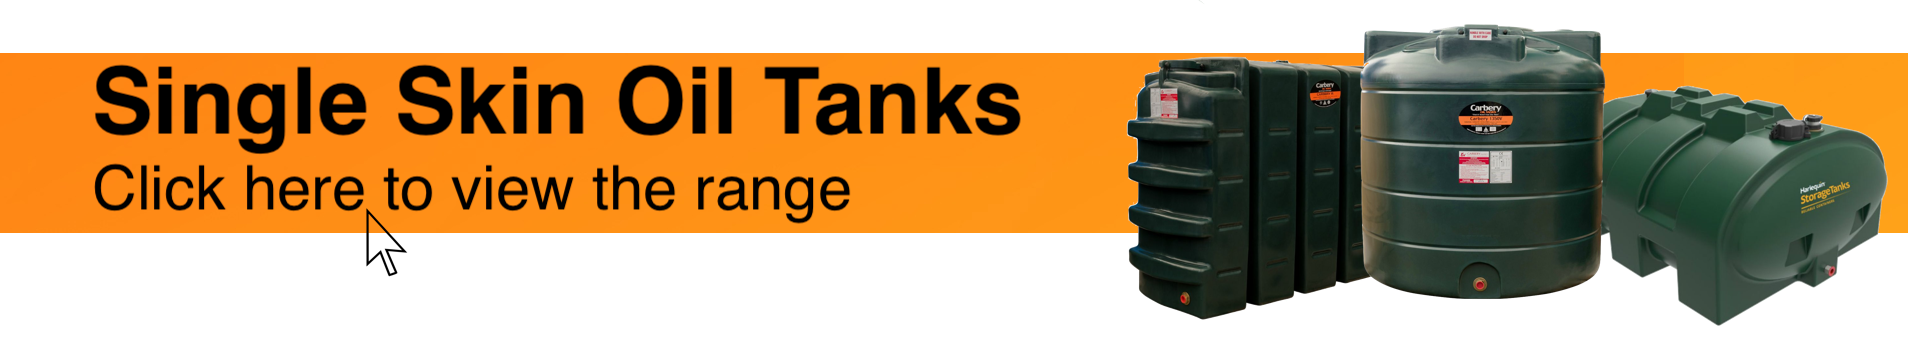 Photograph of Carbery and Harlequin Single Skin Oil Tanks on an range background. Accompanying text encourages visitors to click the banner and view Fuel Tank Store's range of Single Skin Oil Tanks.